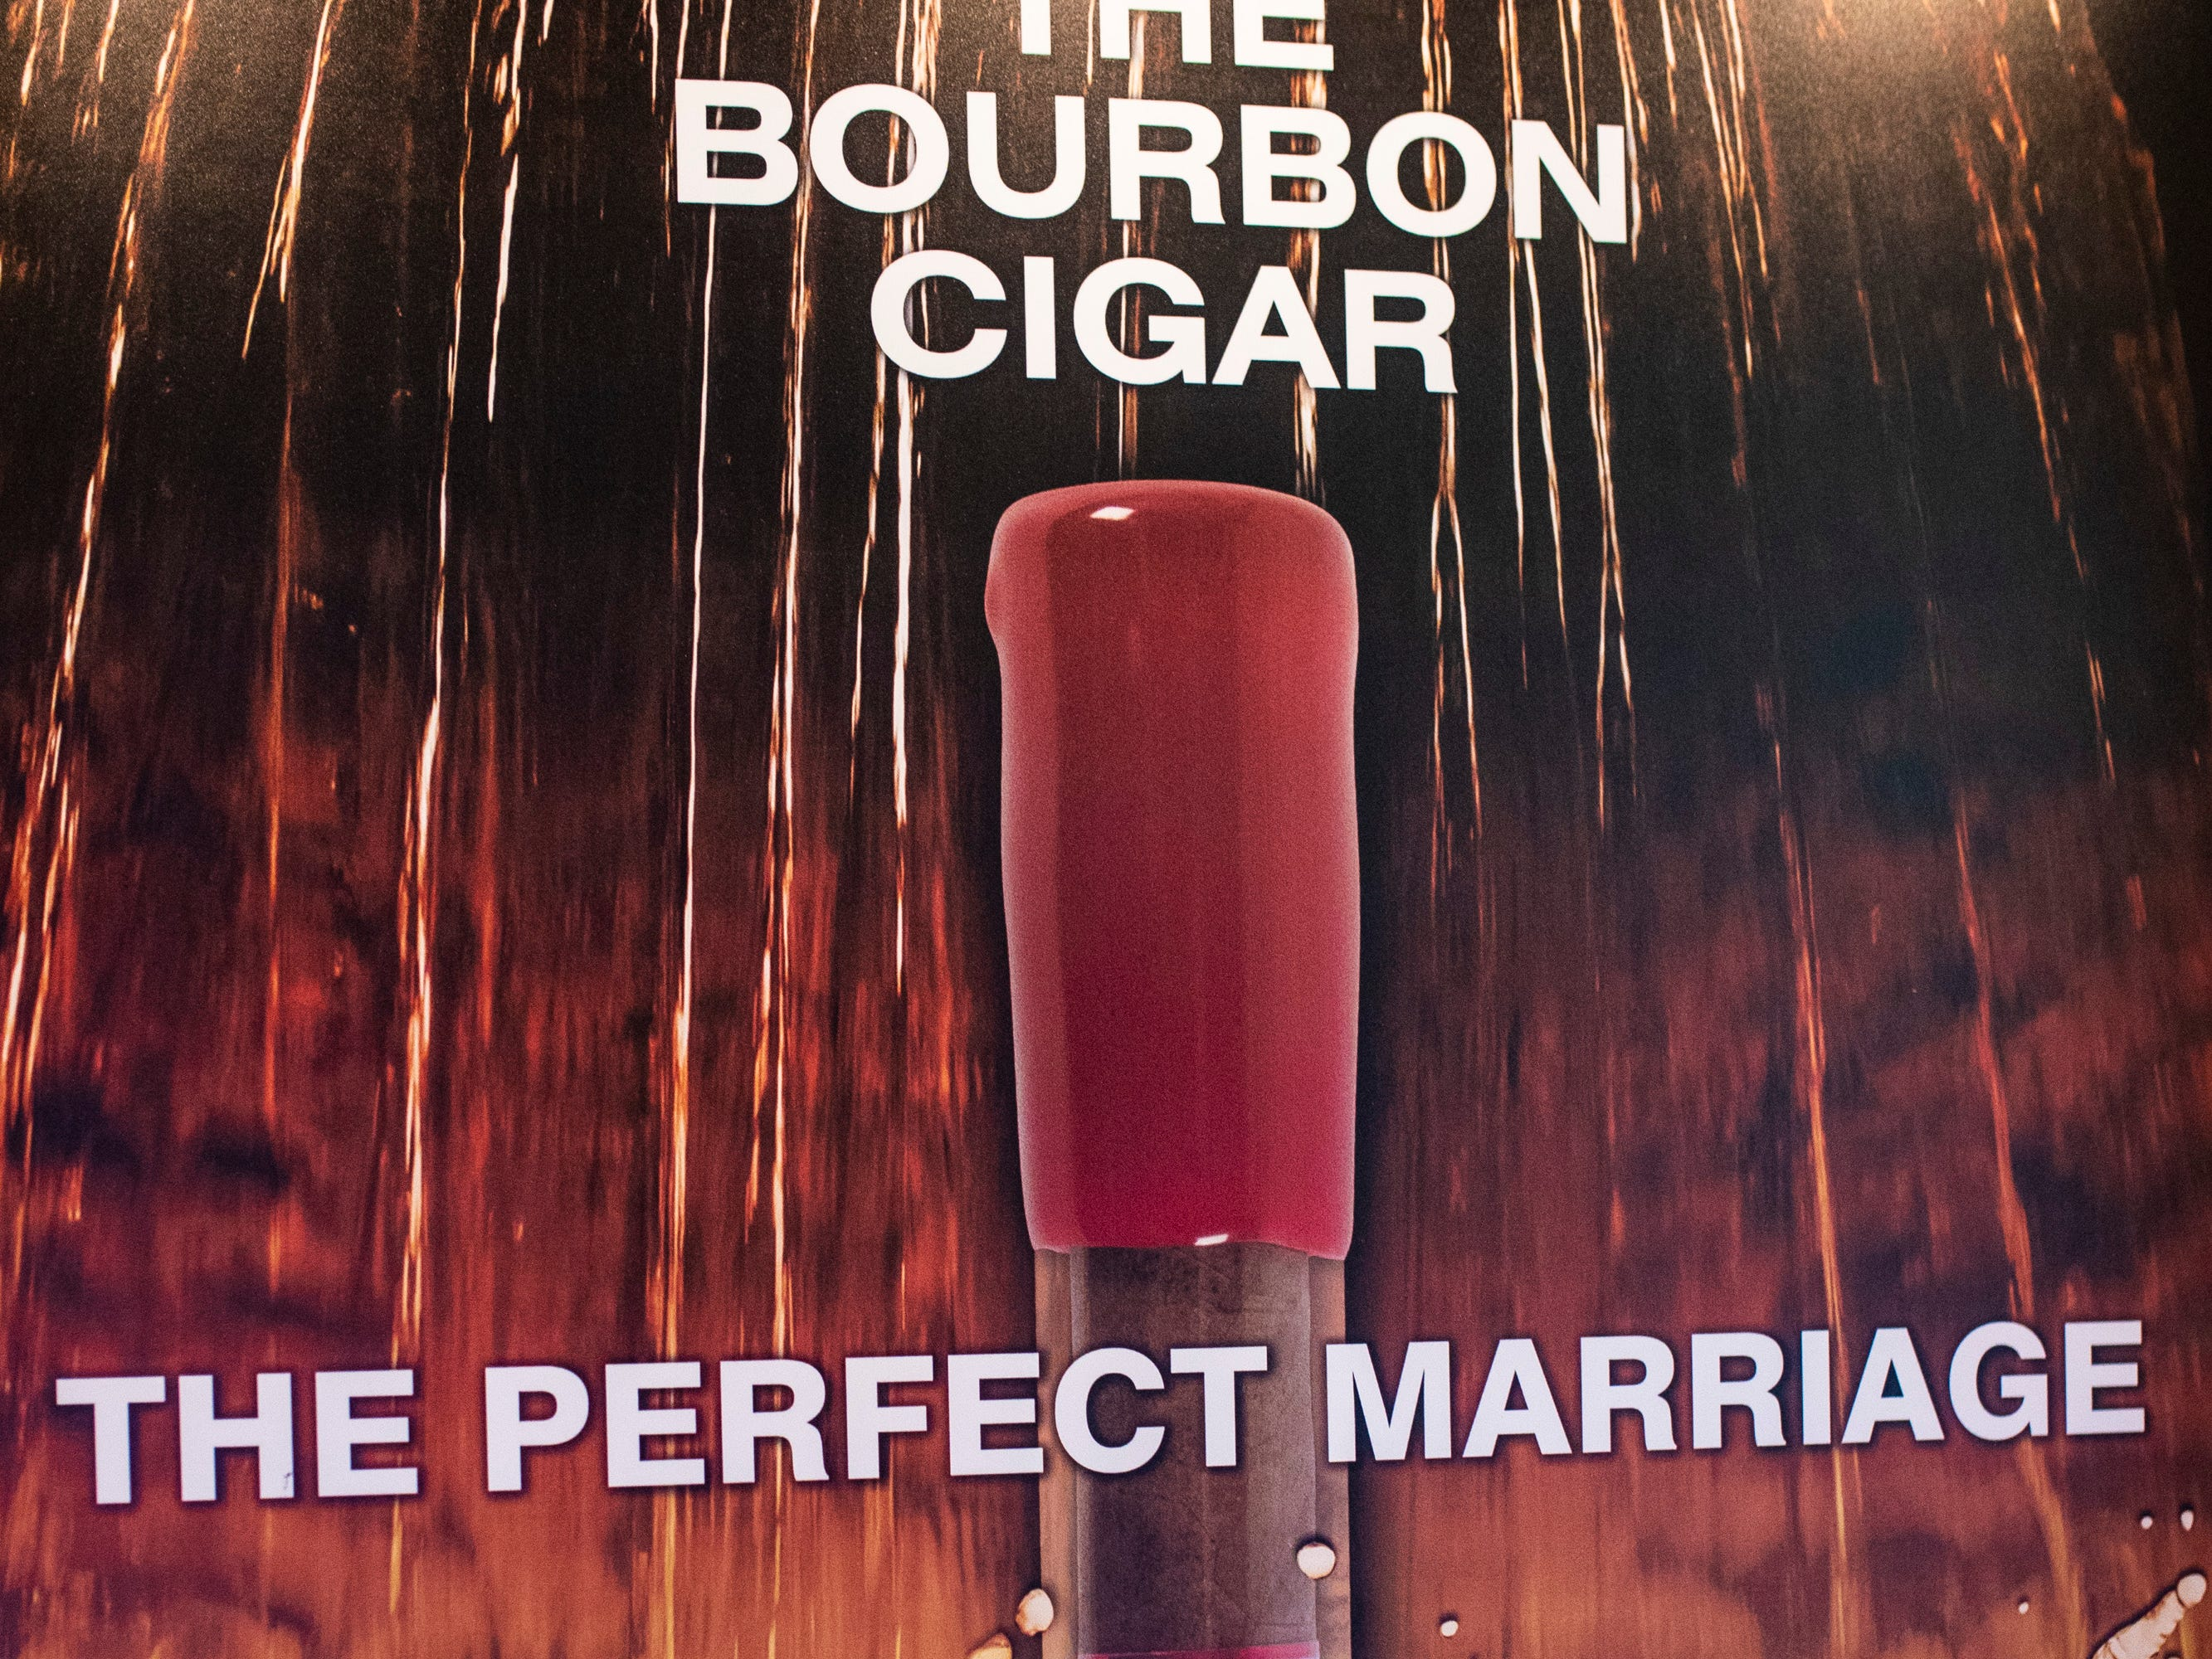 """A marketing ad created by Ted Jackson's company Ted's Cigars for their """"Bourbon Cigar."""" The Louisville company set about rebranding to differentiate from their previous Maker's Mark cigar once an agreement ended in 2016. Maker's Mark filed a suit Tuesday saying Jackson is infringing on their trademark, while Jackson is countersuing over issues related to dipped wax use rights. Jan. 10, 2019"""